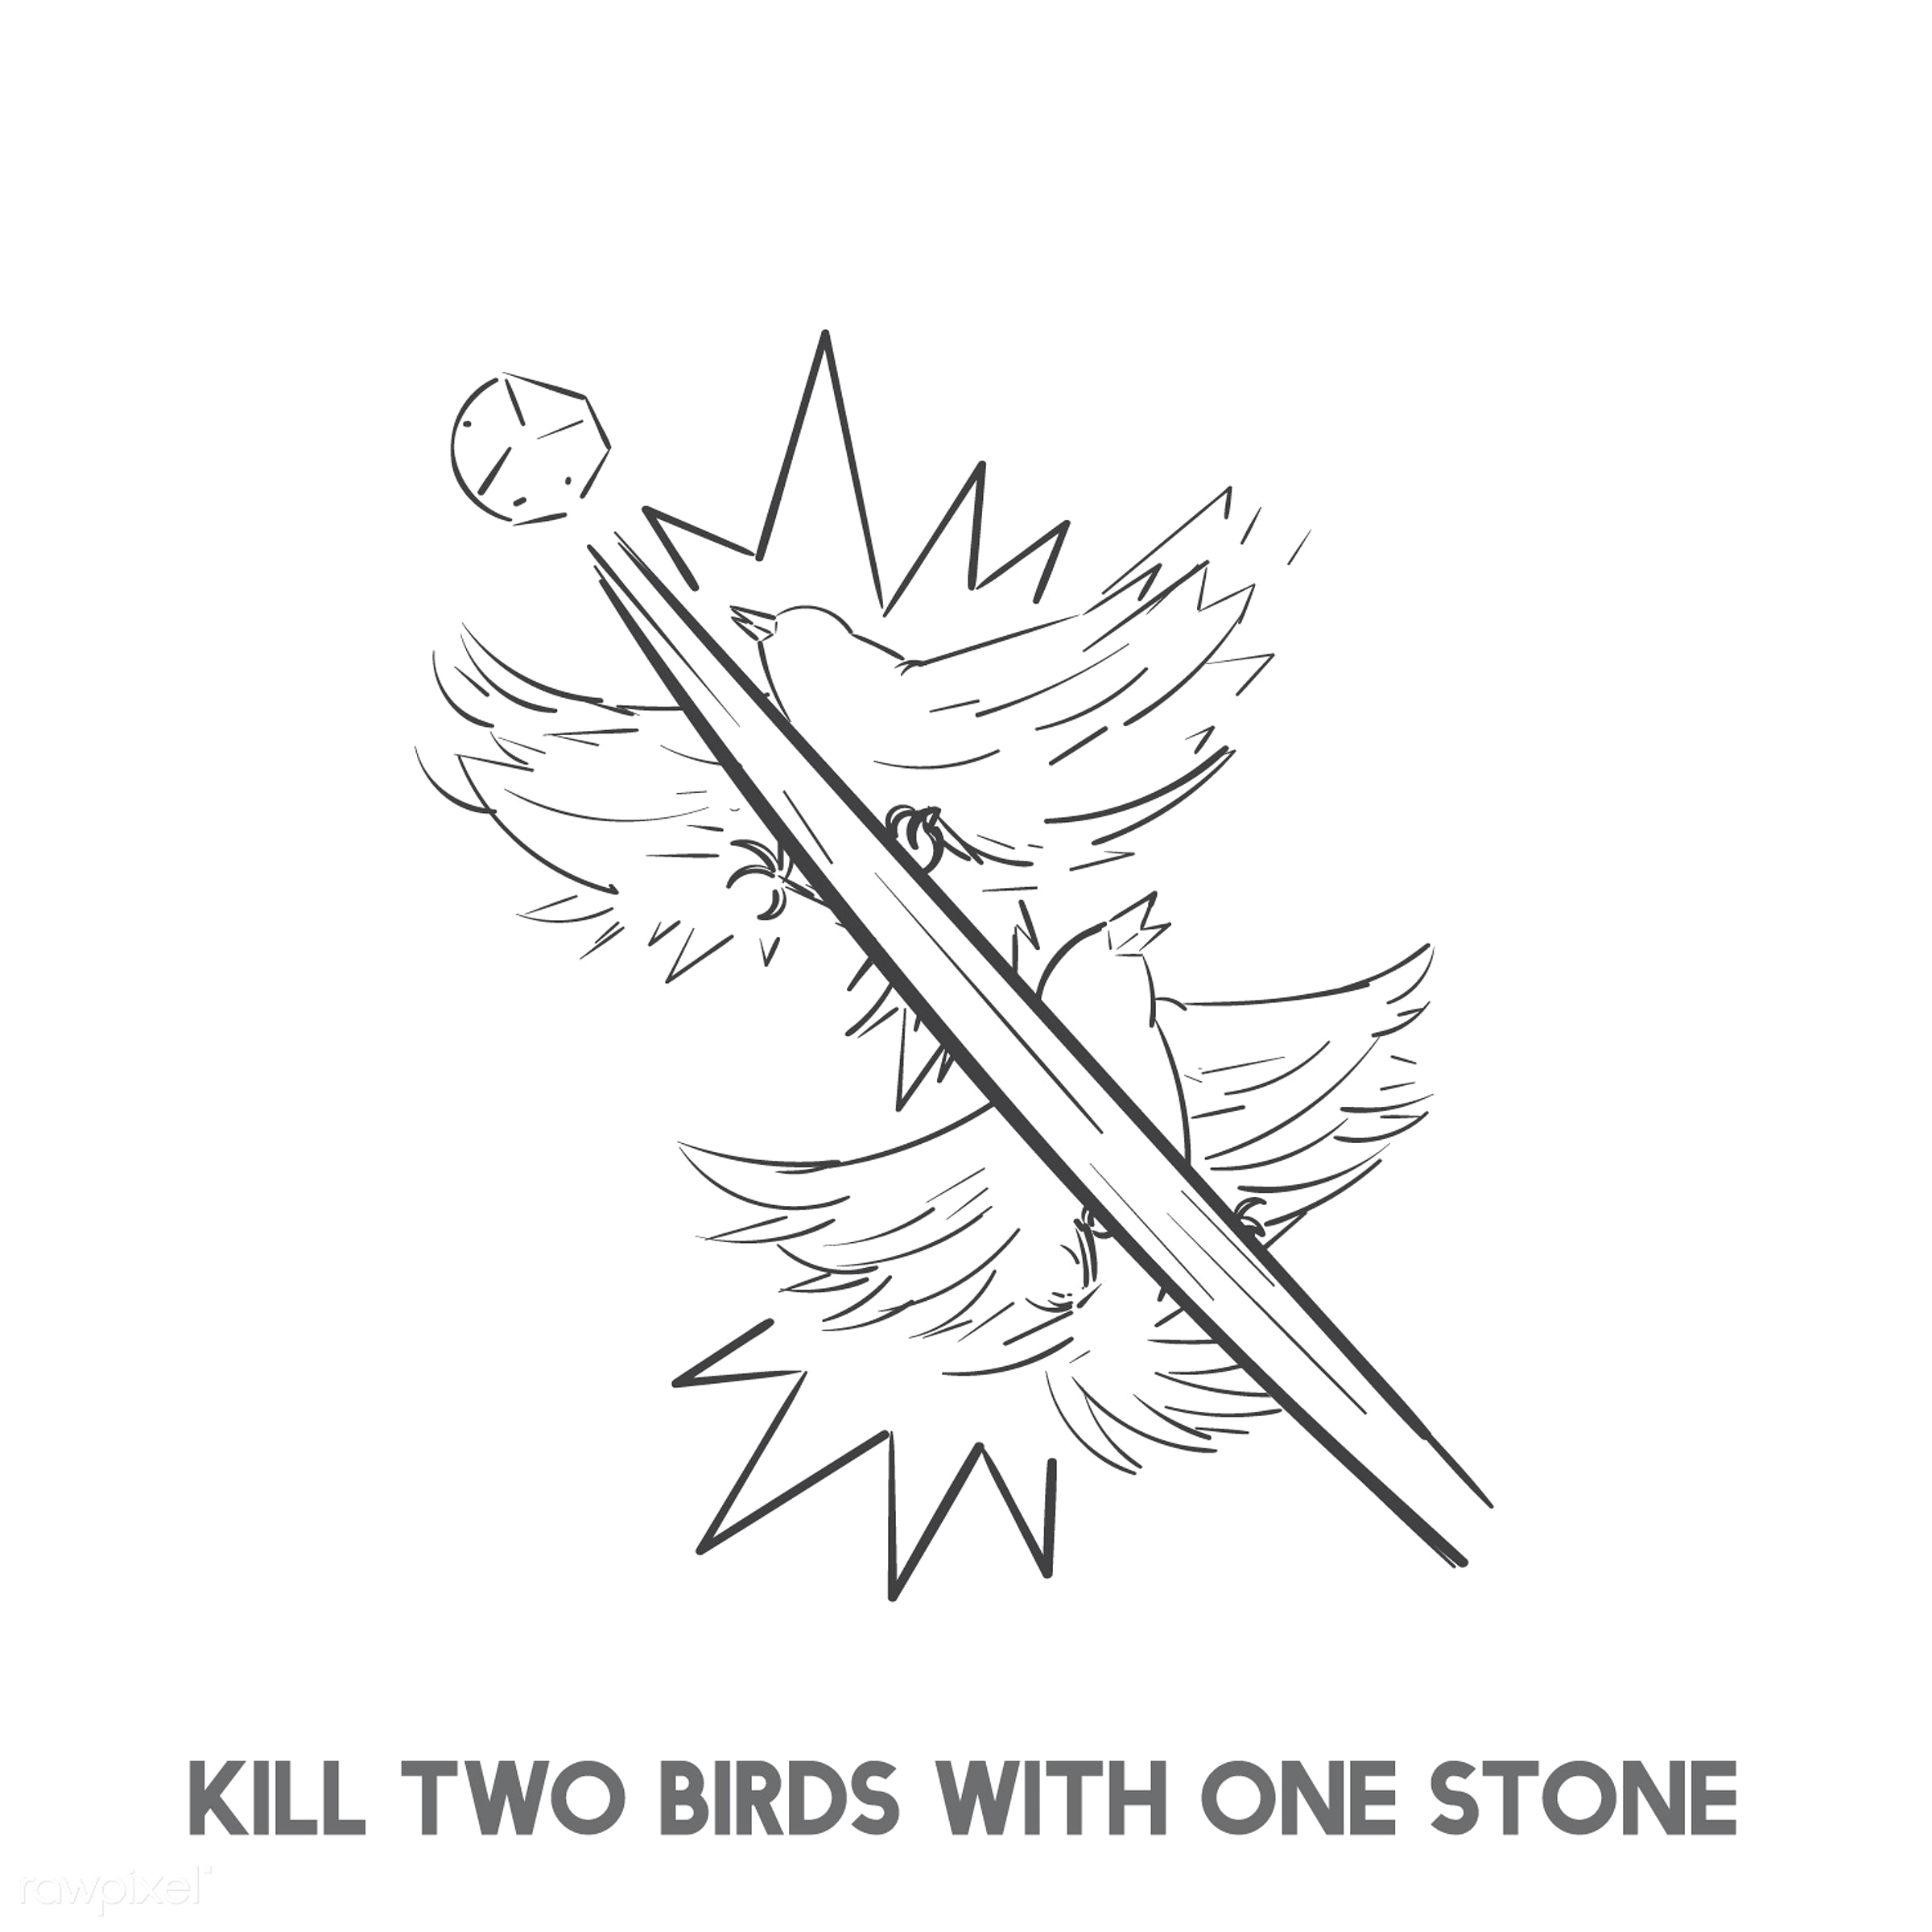 Kill two birds with one stone - achievement, affective, art, benefits, bird, creative, creativity, design, drawing, drawn,...